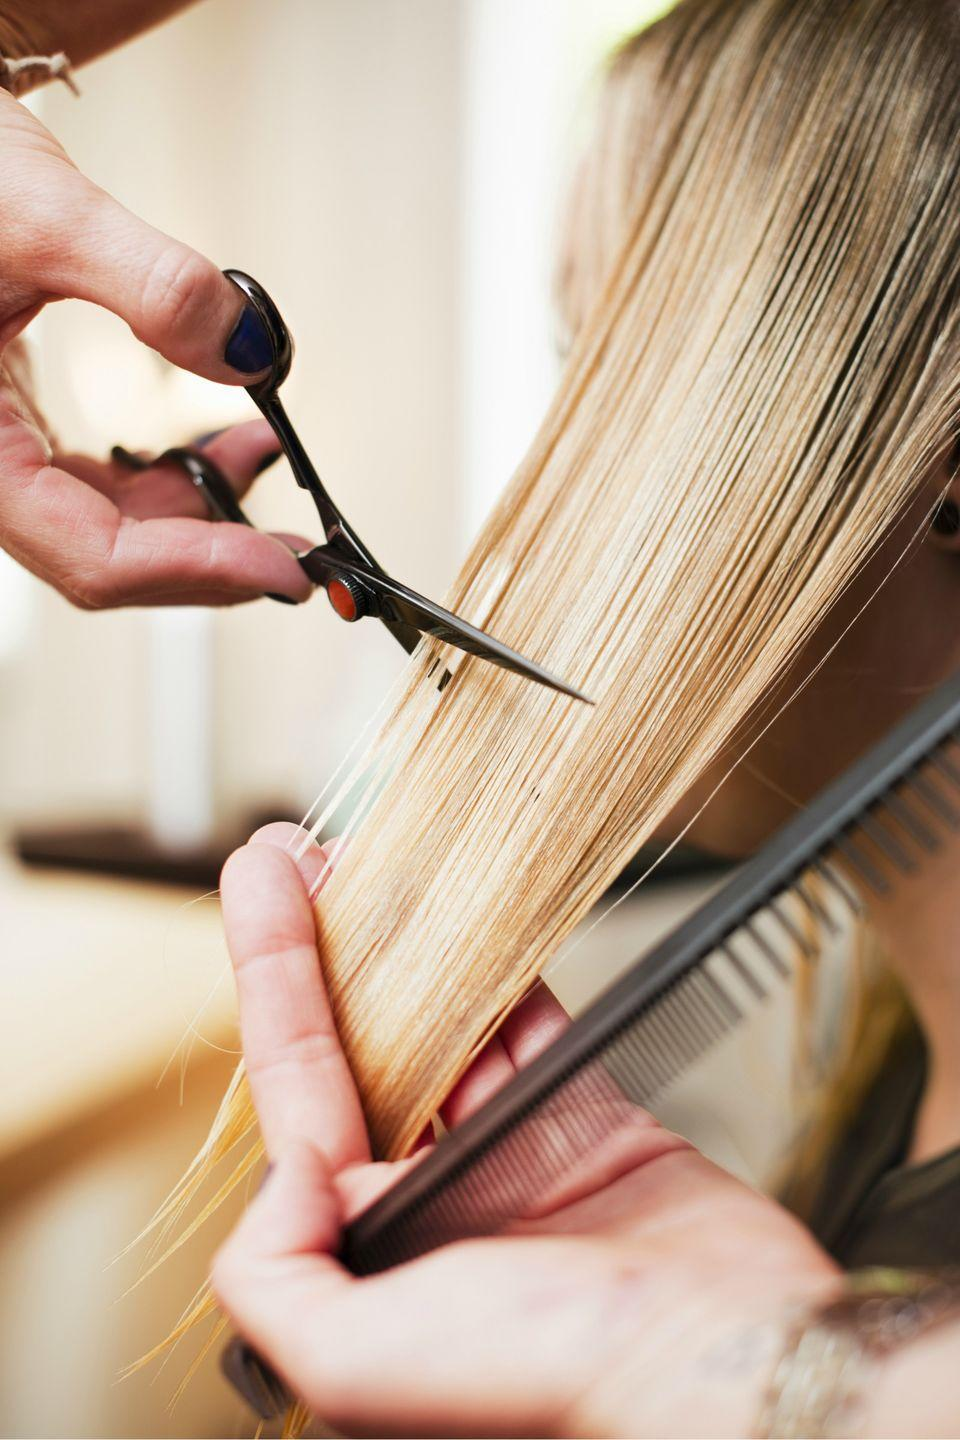 """<p>Make a standing <a href=""""https://www.womansday.com/hairstyles/"""" rel=""""nofollow noopener"""" target=""""_blank"""" data-ylk=""""slk:hair appointment"""" class=""""link rapid-noclick-resp"""">hair appointment</a>, so you don't have to keep bumping it down on your to-do list. </p>"""